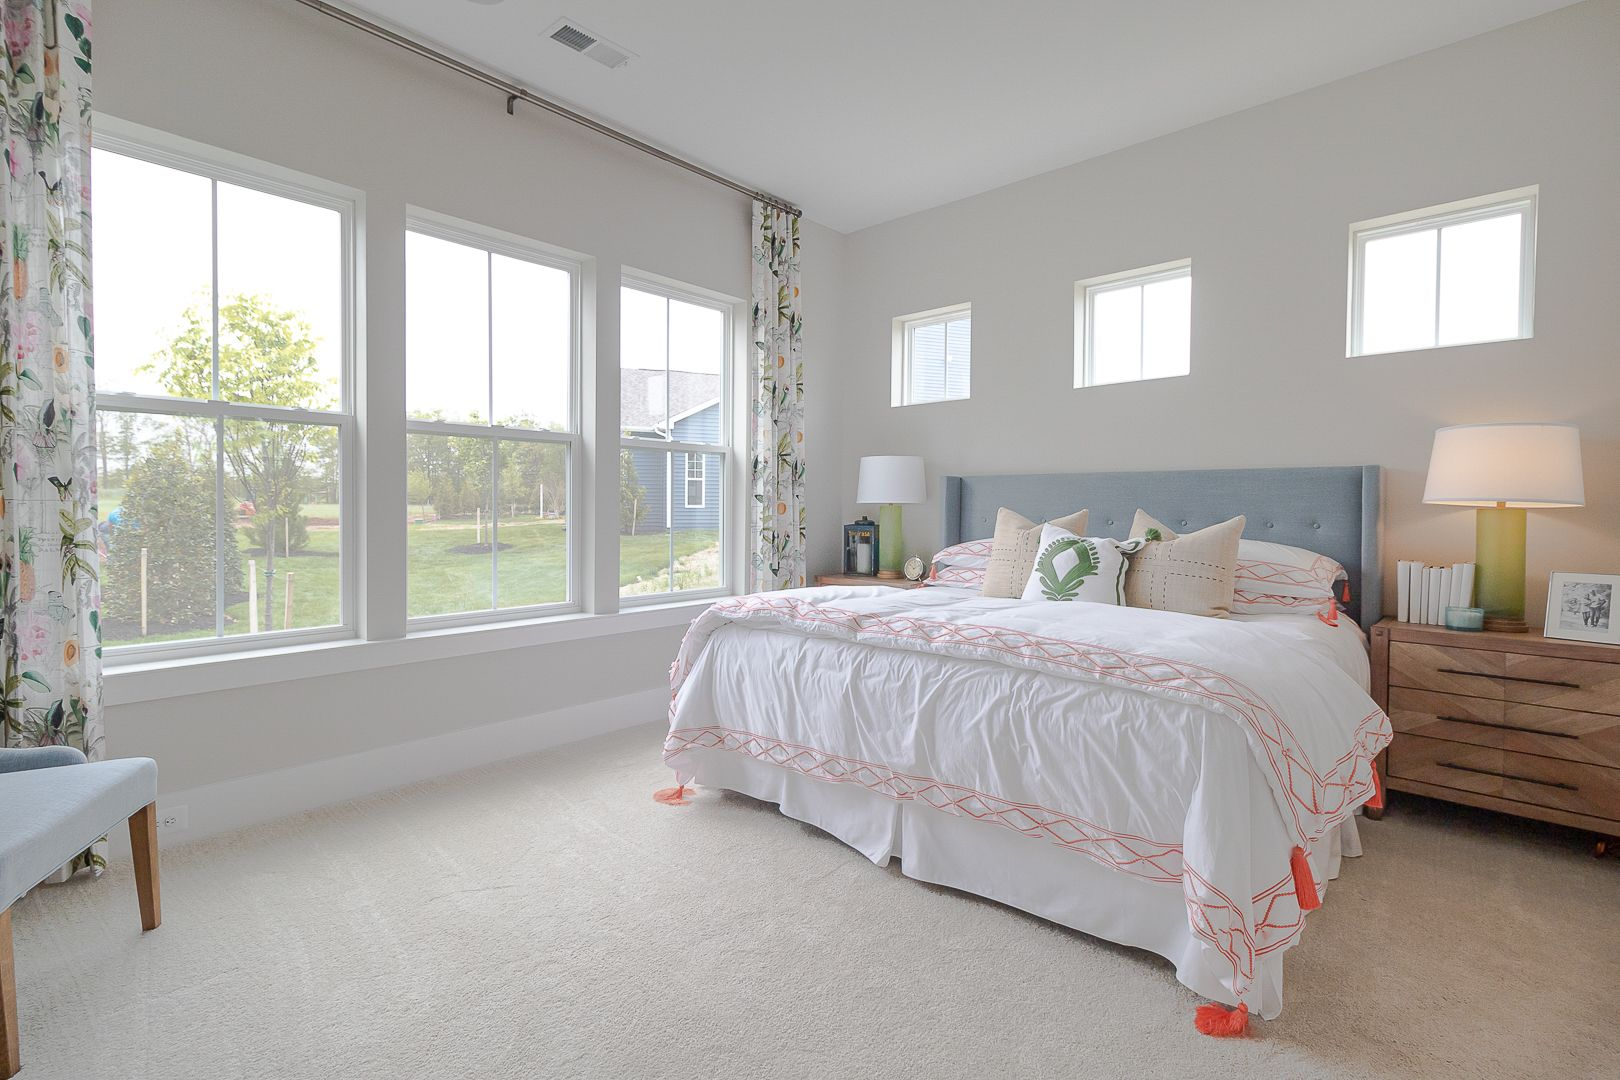 Bedroom featured in The Curator By Elevate Homes in York, PA